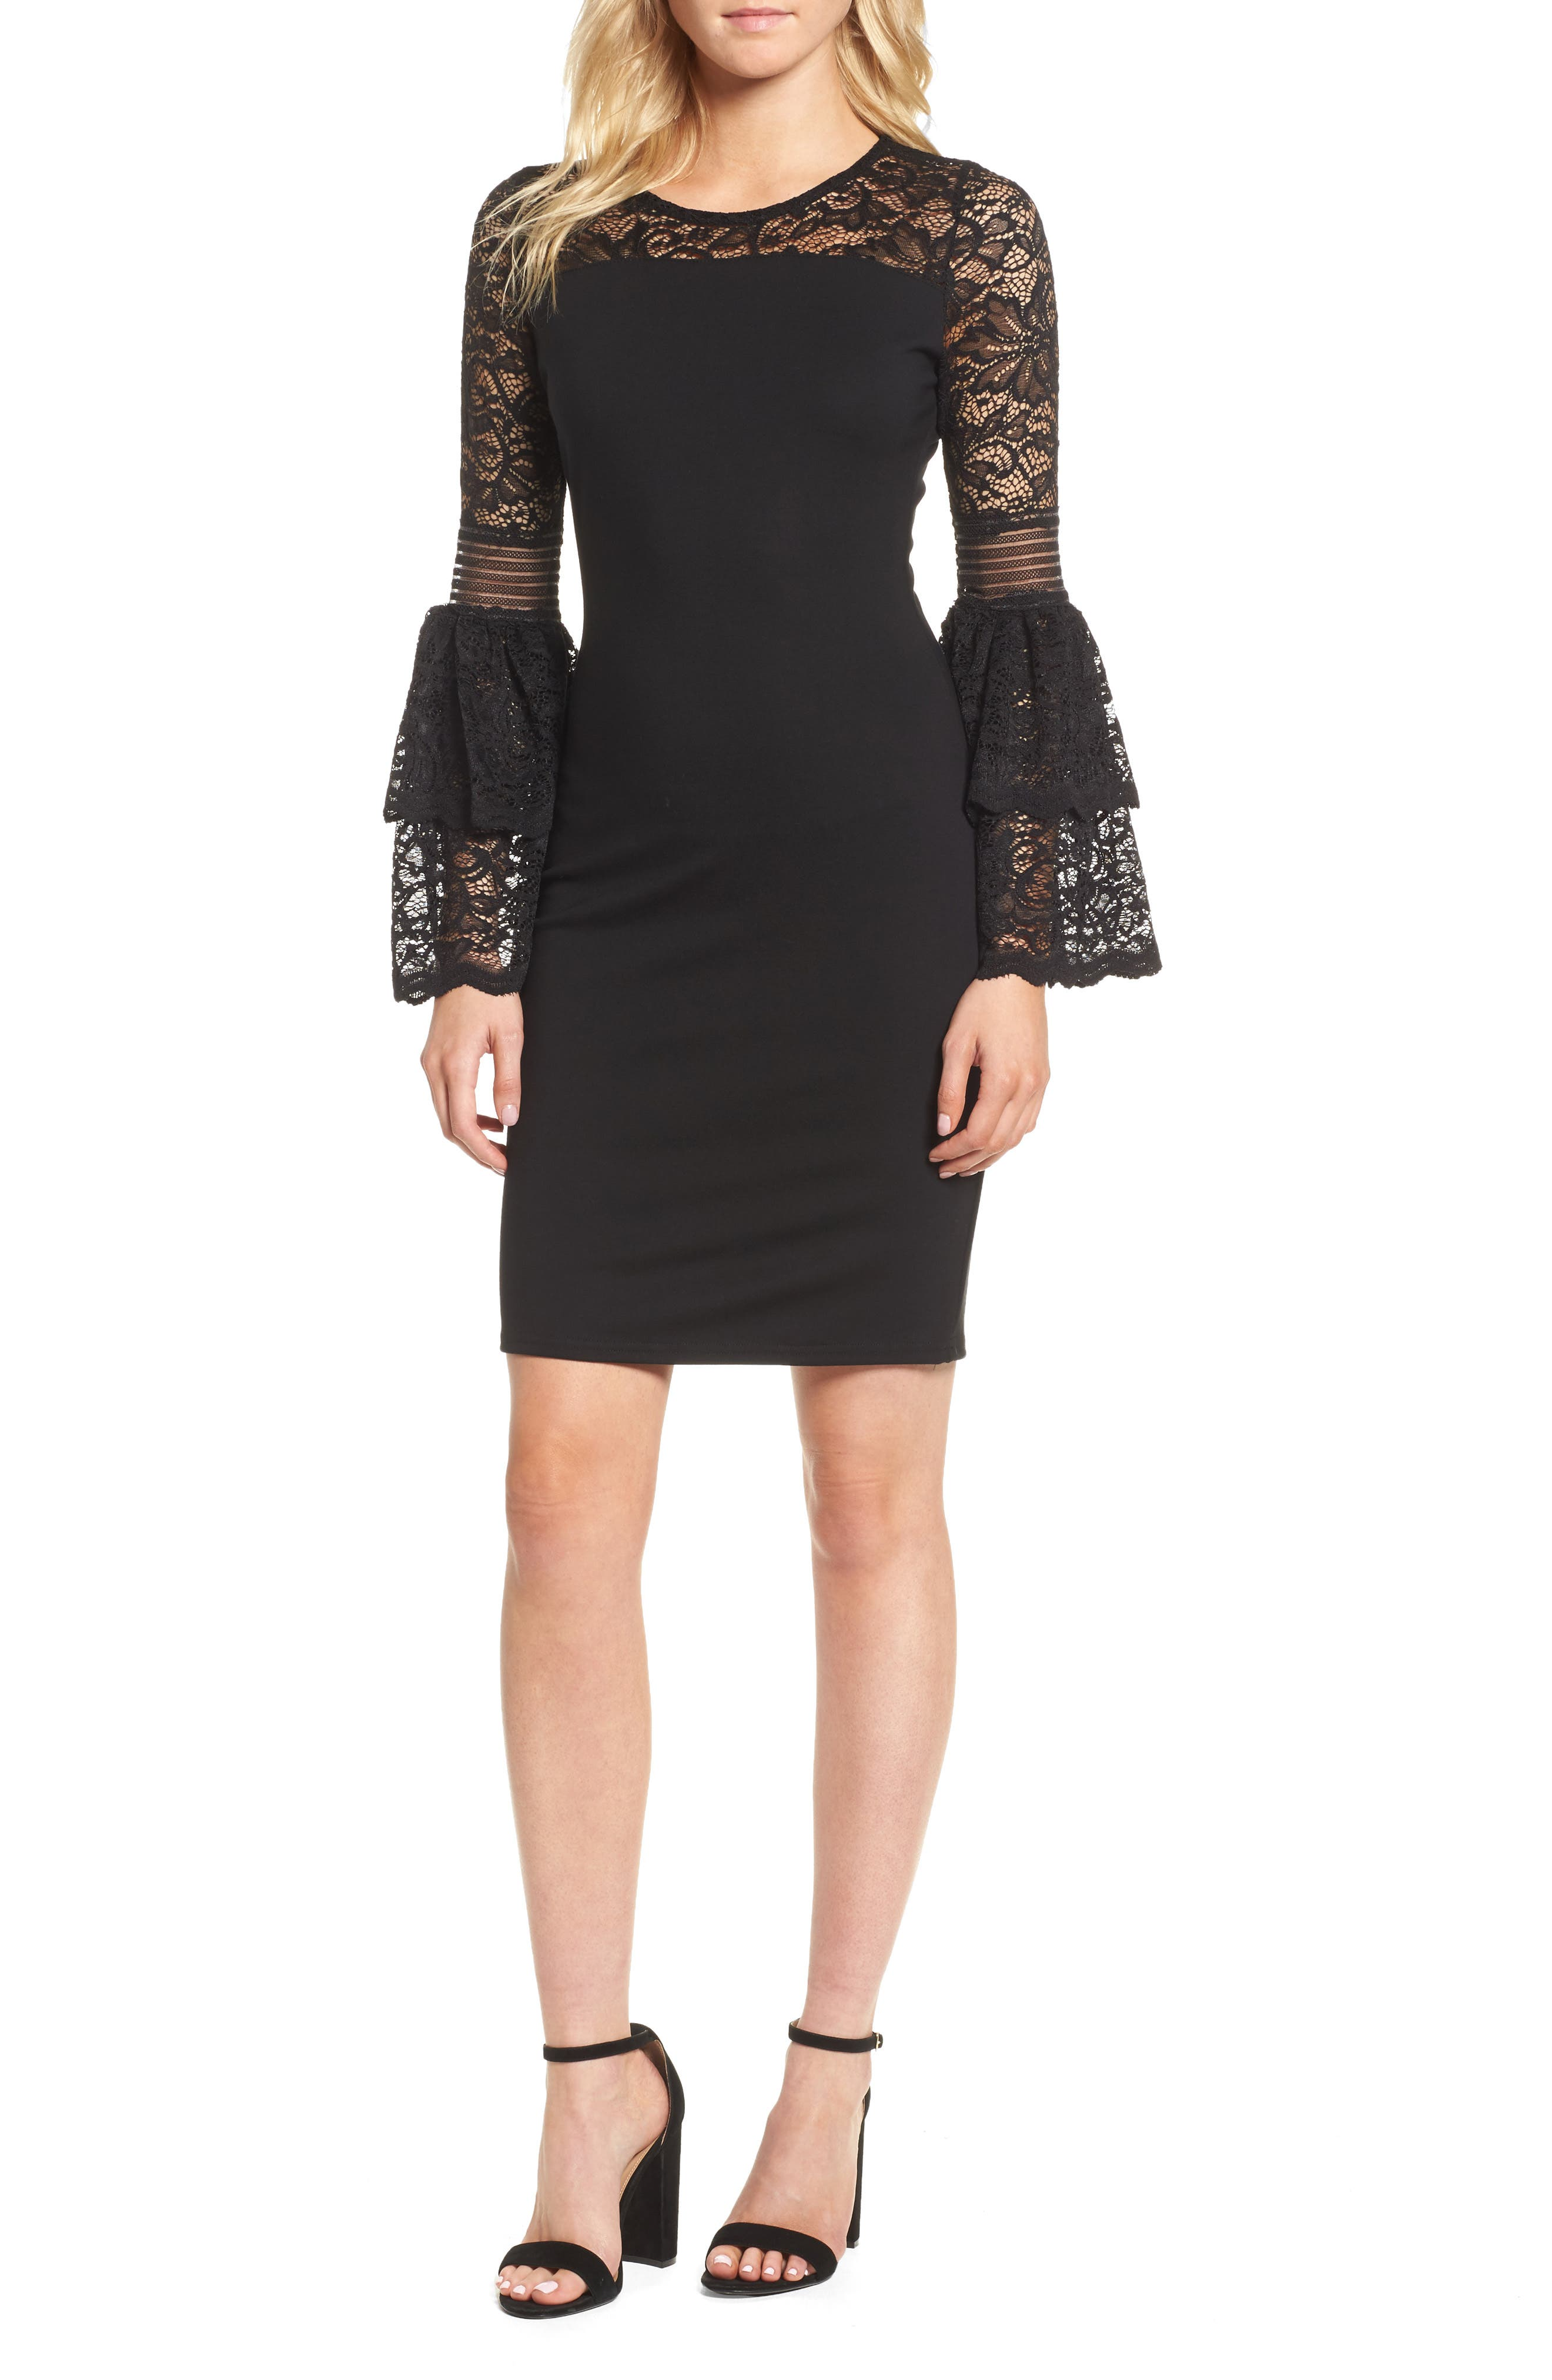 Sentimental NY Floetry Bell Sleeve Sheath Dress